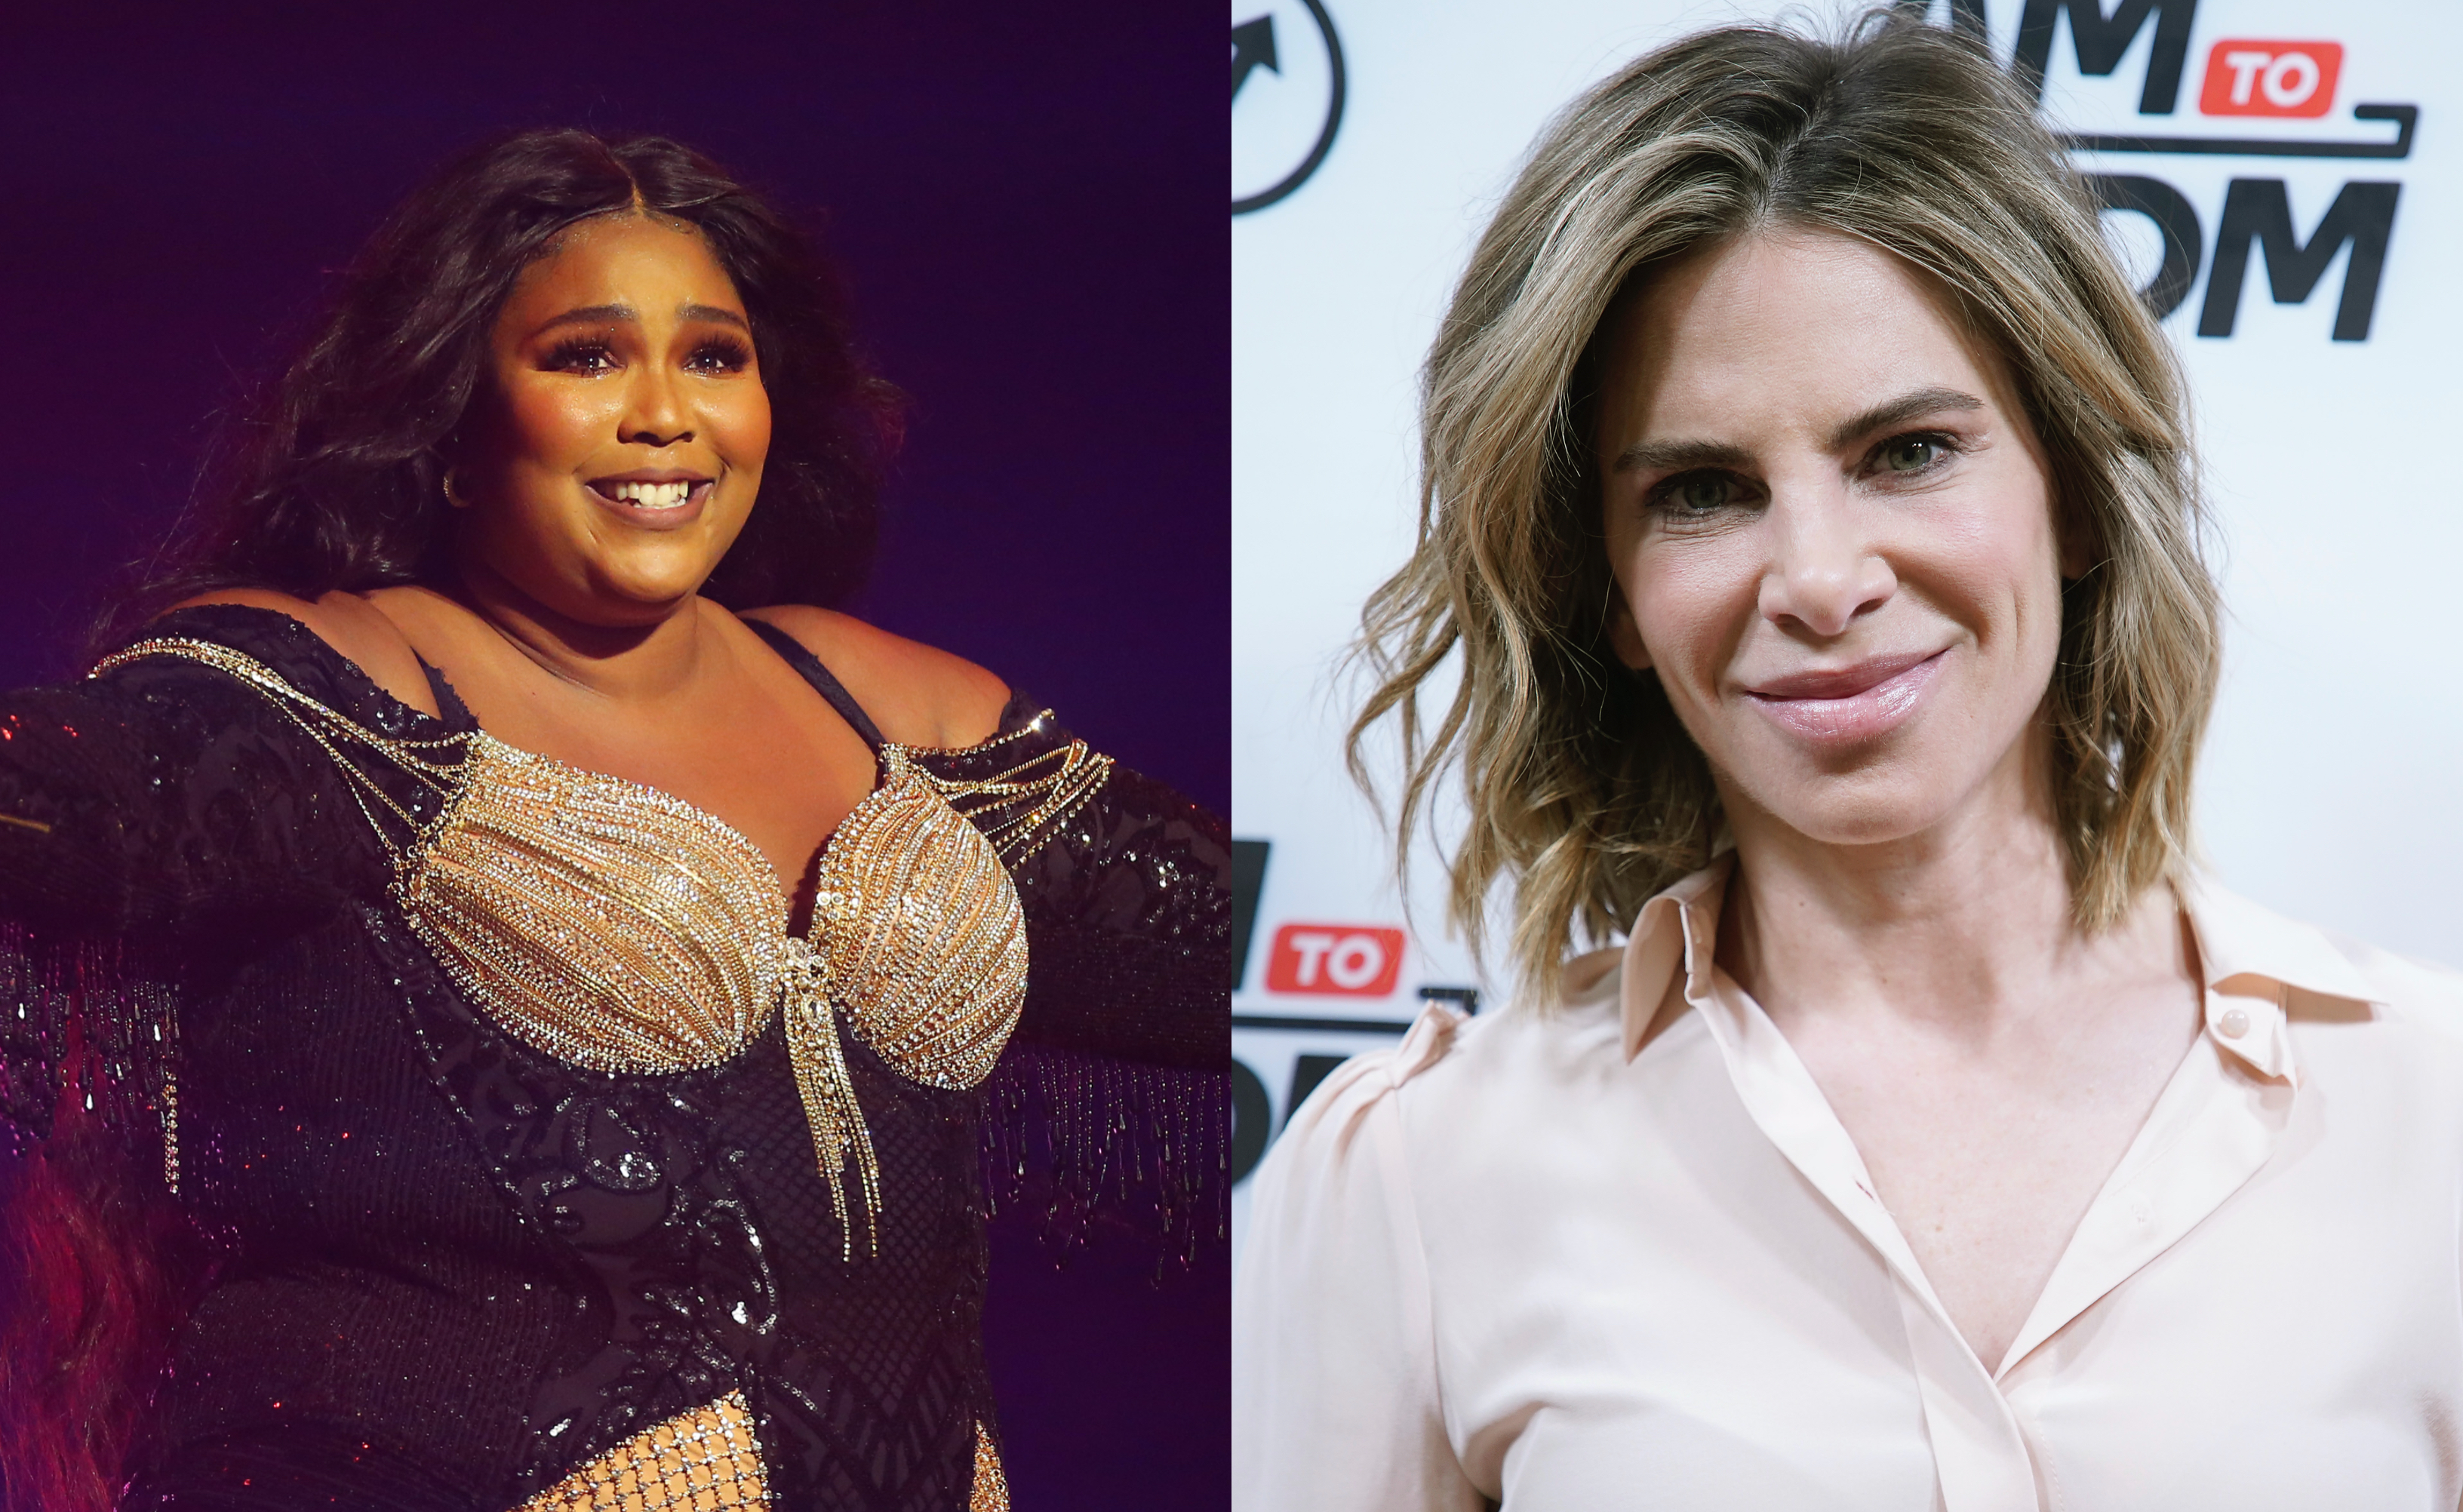 """The Biggest Loser coach Jillian Michaels argued that people should celebrate Lizzo's """"music"""" not her """"body"""". (Don Arnold/Getty Images/John Lamparski/Getty Images)"""